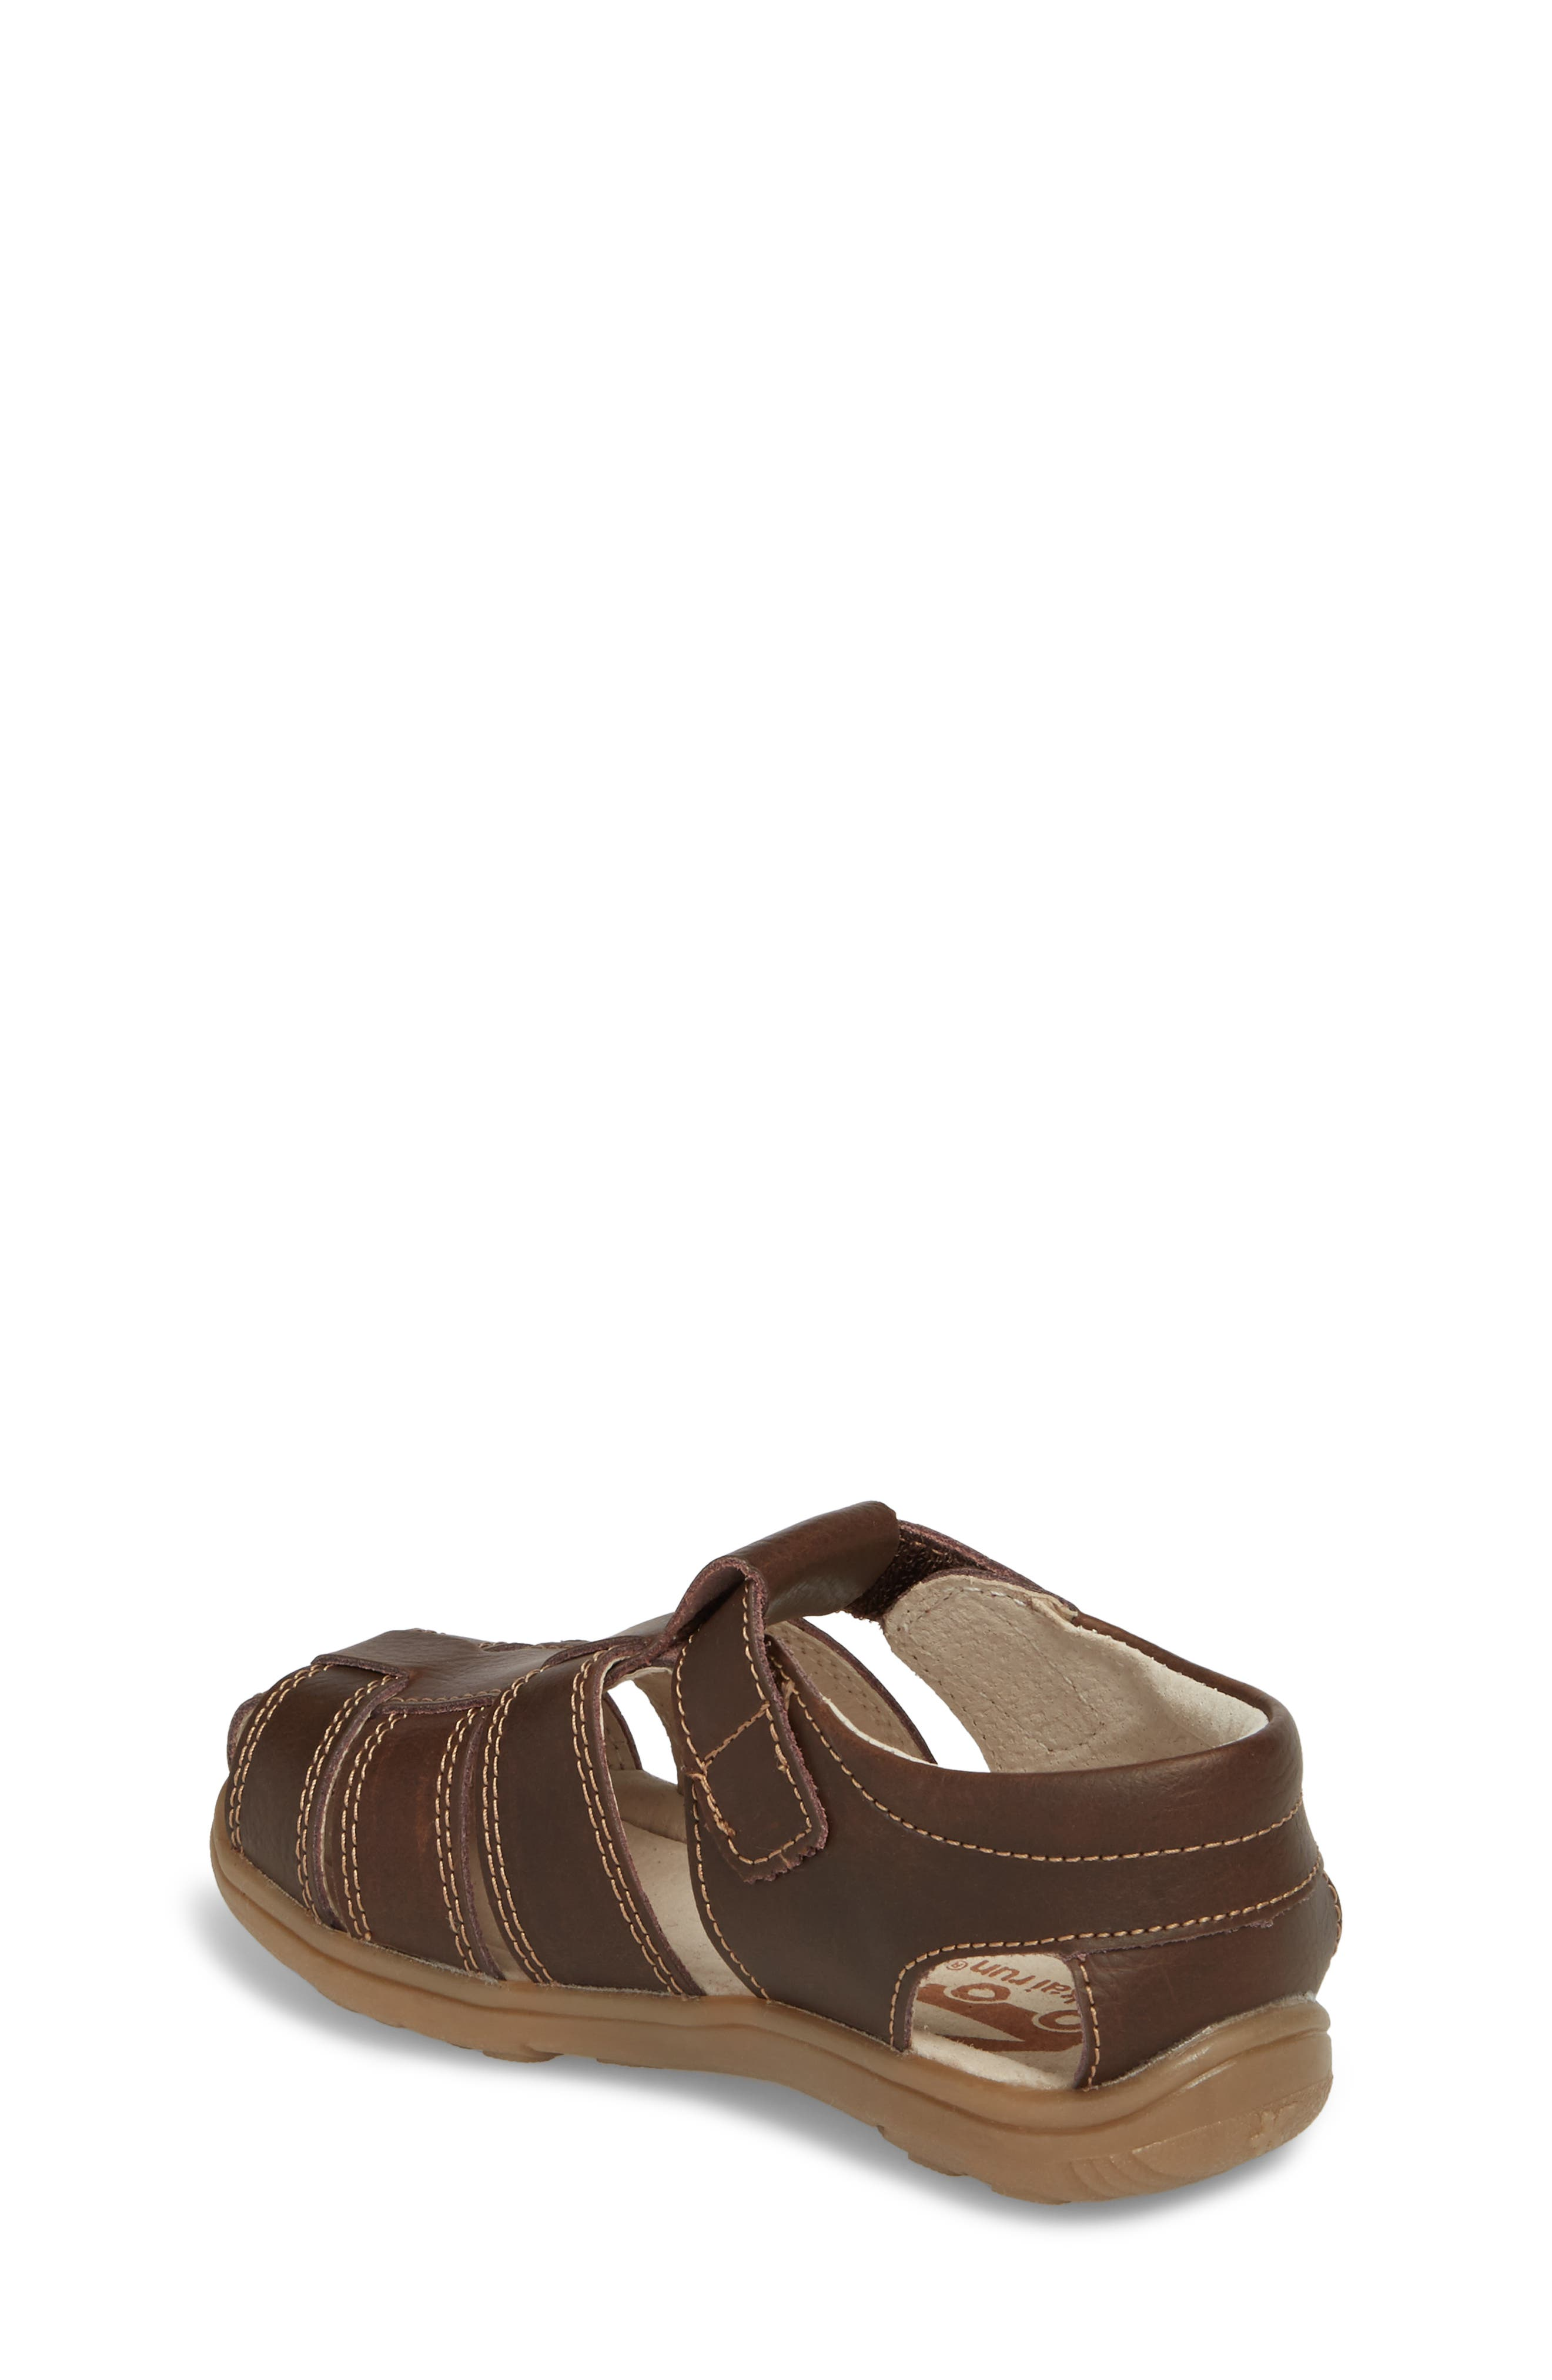 Alternate Image 2  - See Kai Run Jude III Fisherman Sandal (Toddler & Little Kid)